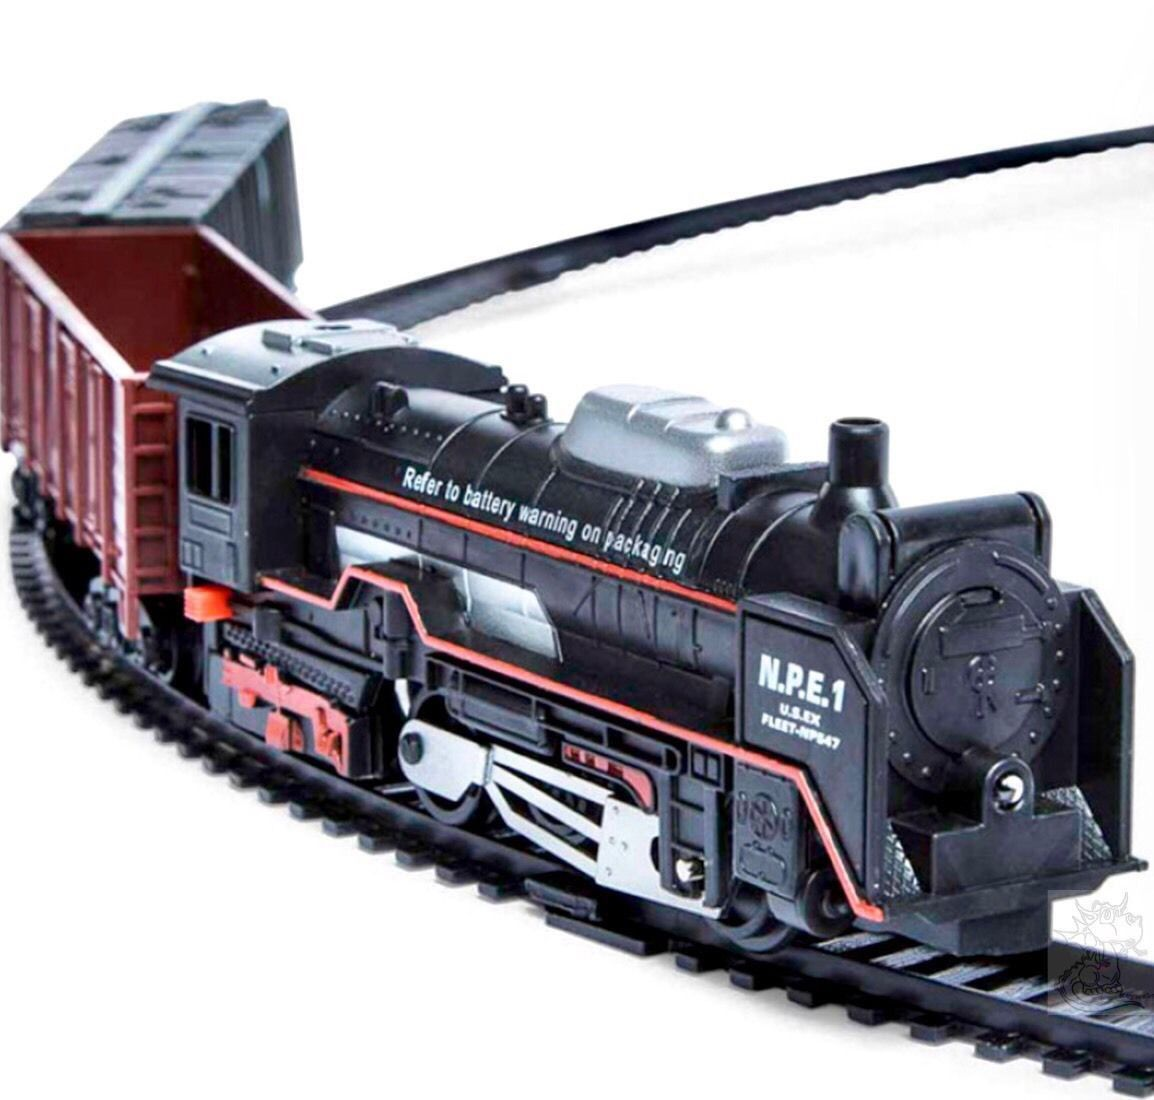 New item today Train Set Lights found at http